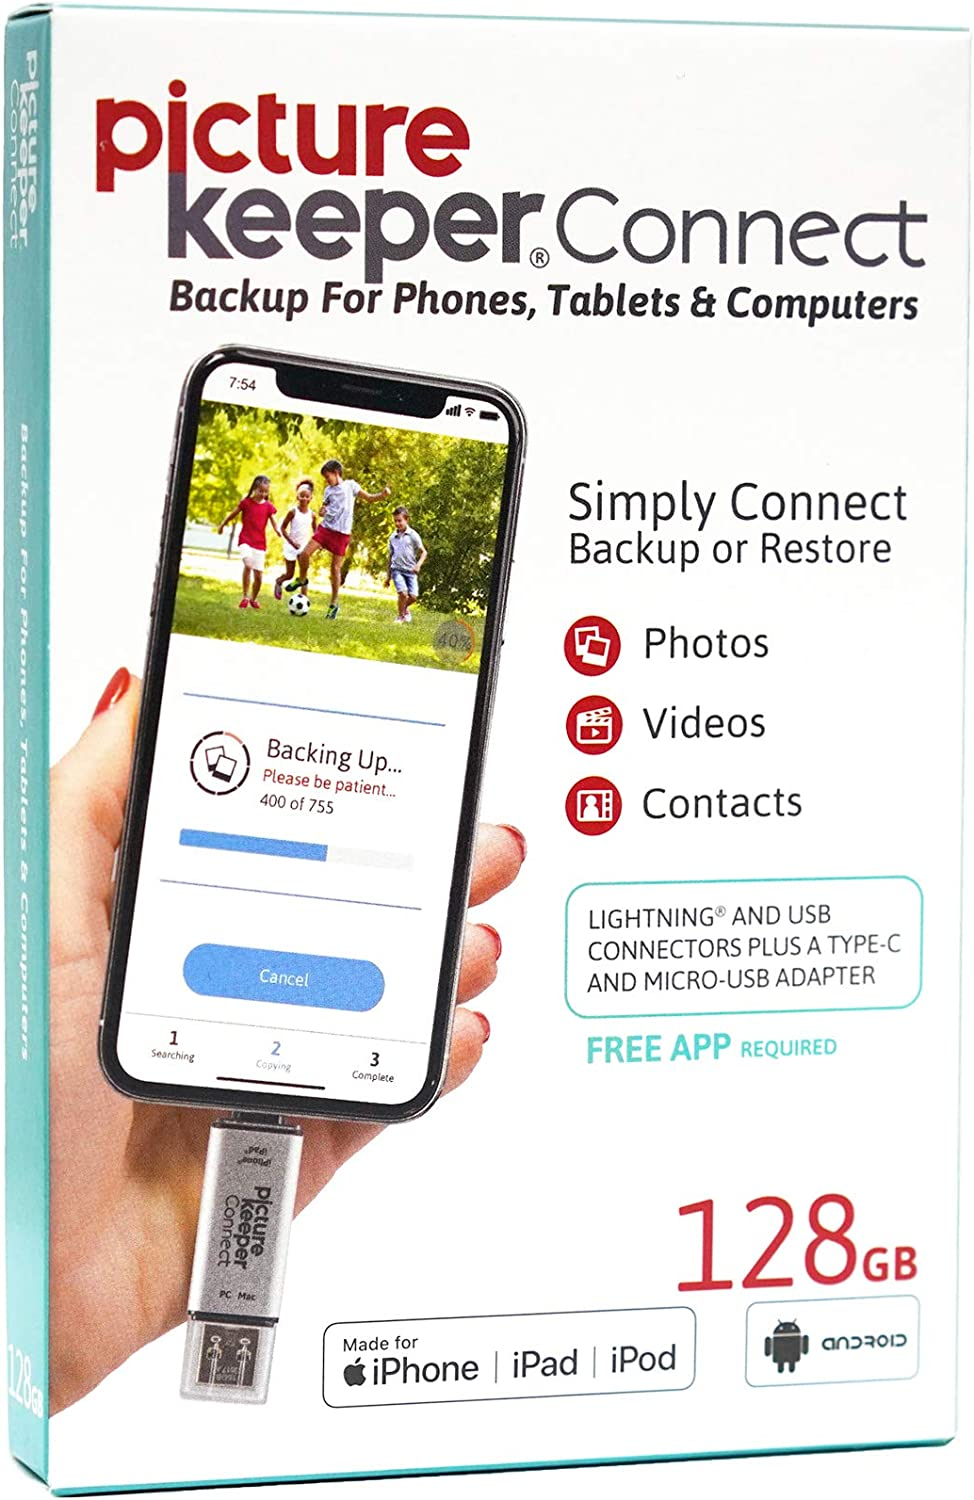 iPhone Smart USB Flash Drive 128GB [Apple MFI Certified] Picture Keeper Connect - Lightning Memory Expansion Backup for Apple iOS